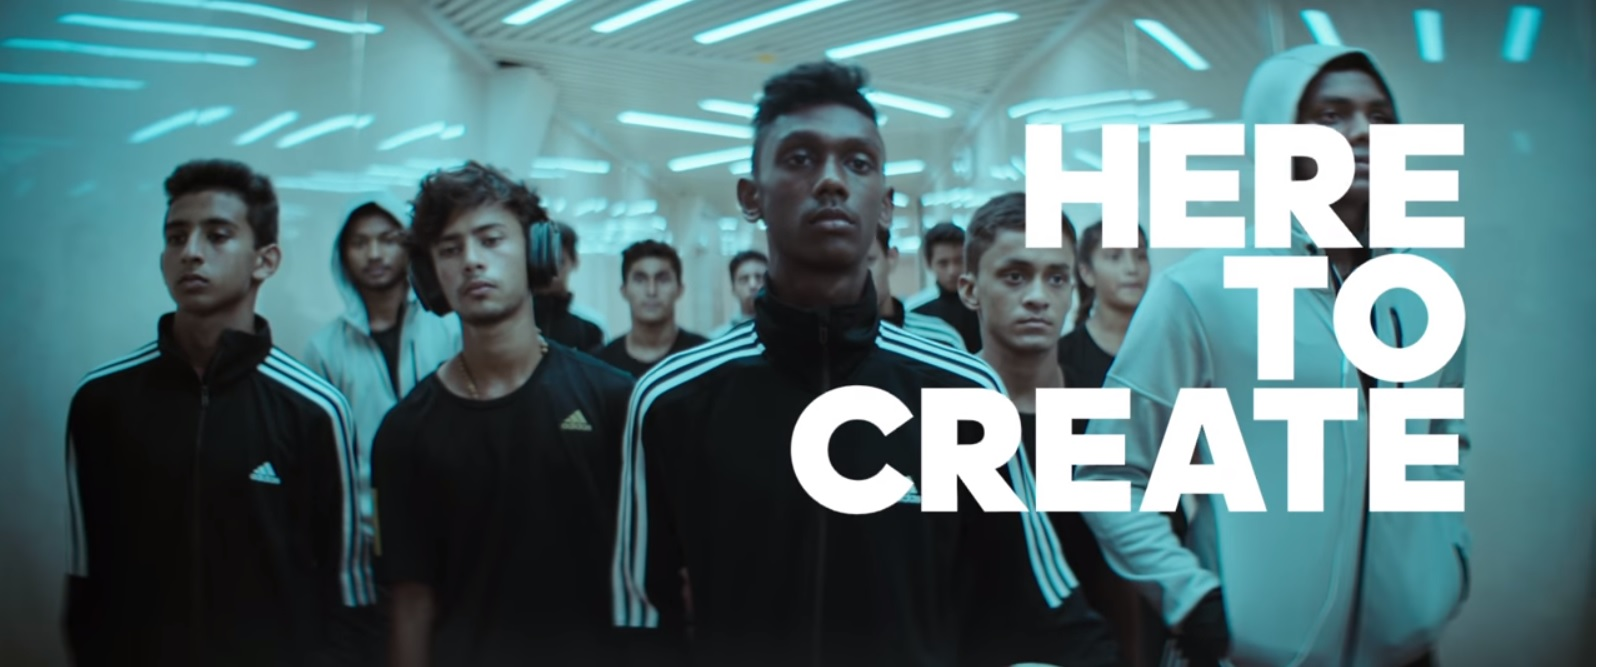 a7a0c7ebd #HereToCreate Adidas Unveils its Campaign for the FIFA U-17 World Cup in  India